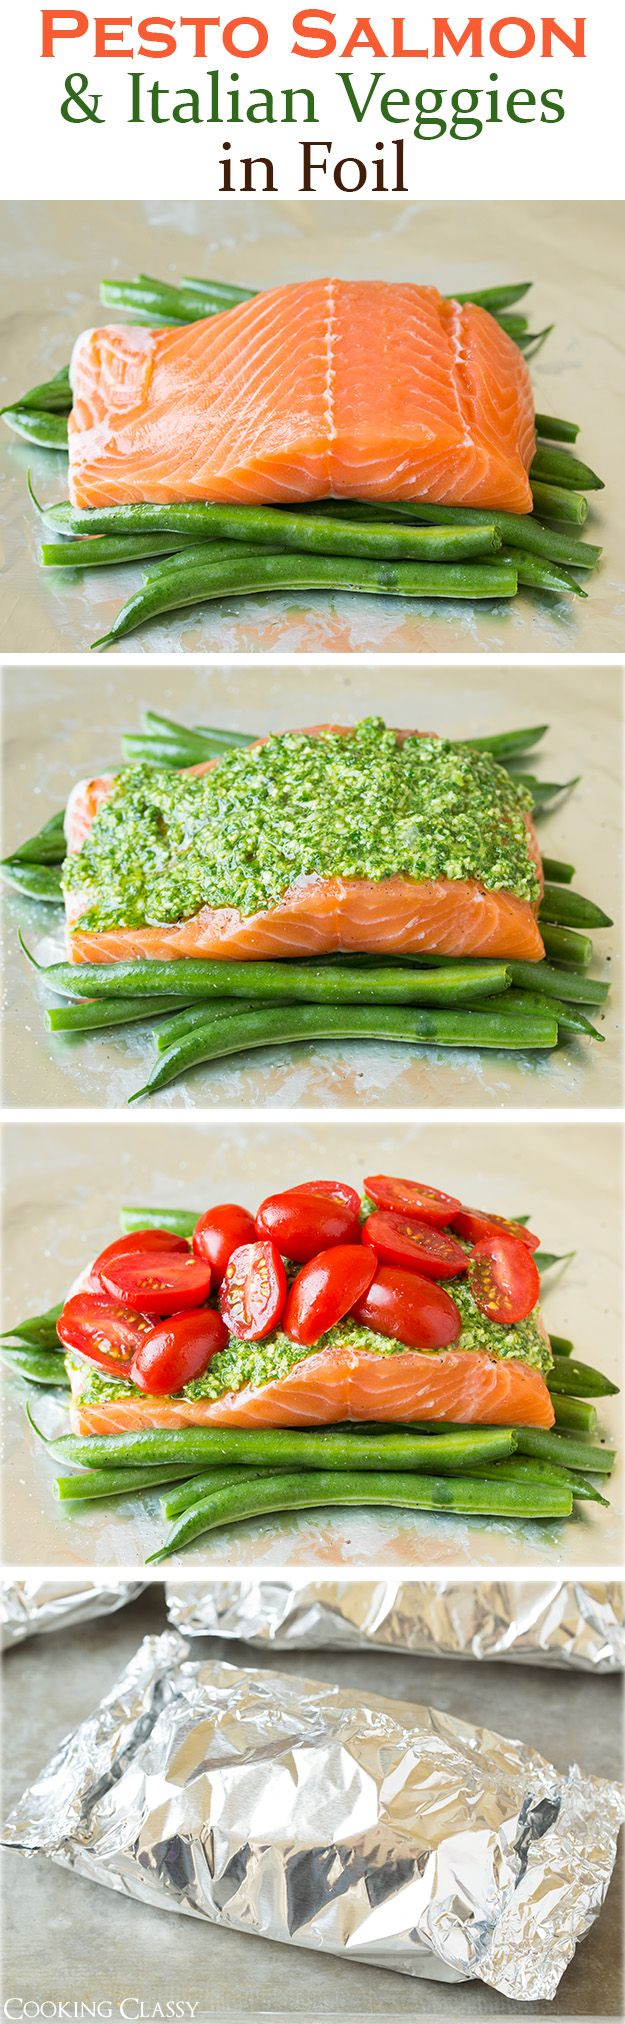 Pesto Salmon and Italian Veggies in Foil – This is an easy, flavorful dinner that